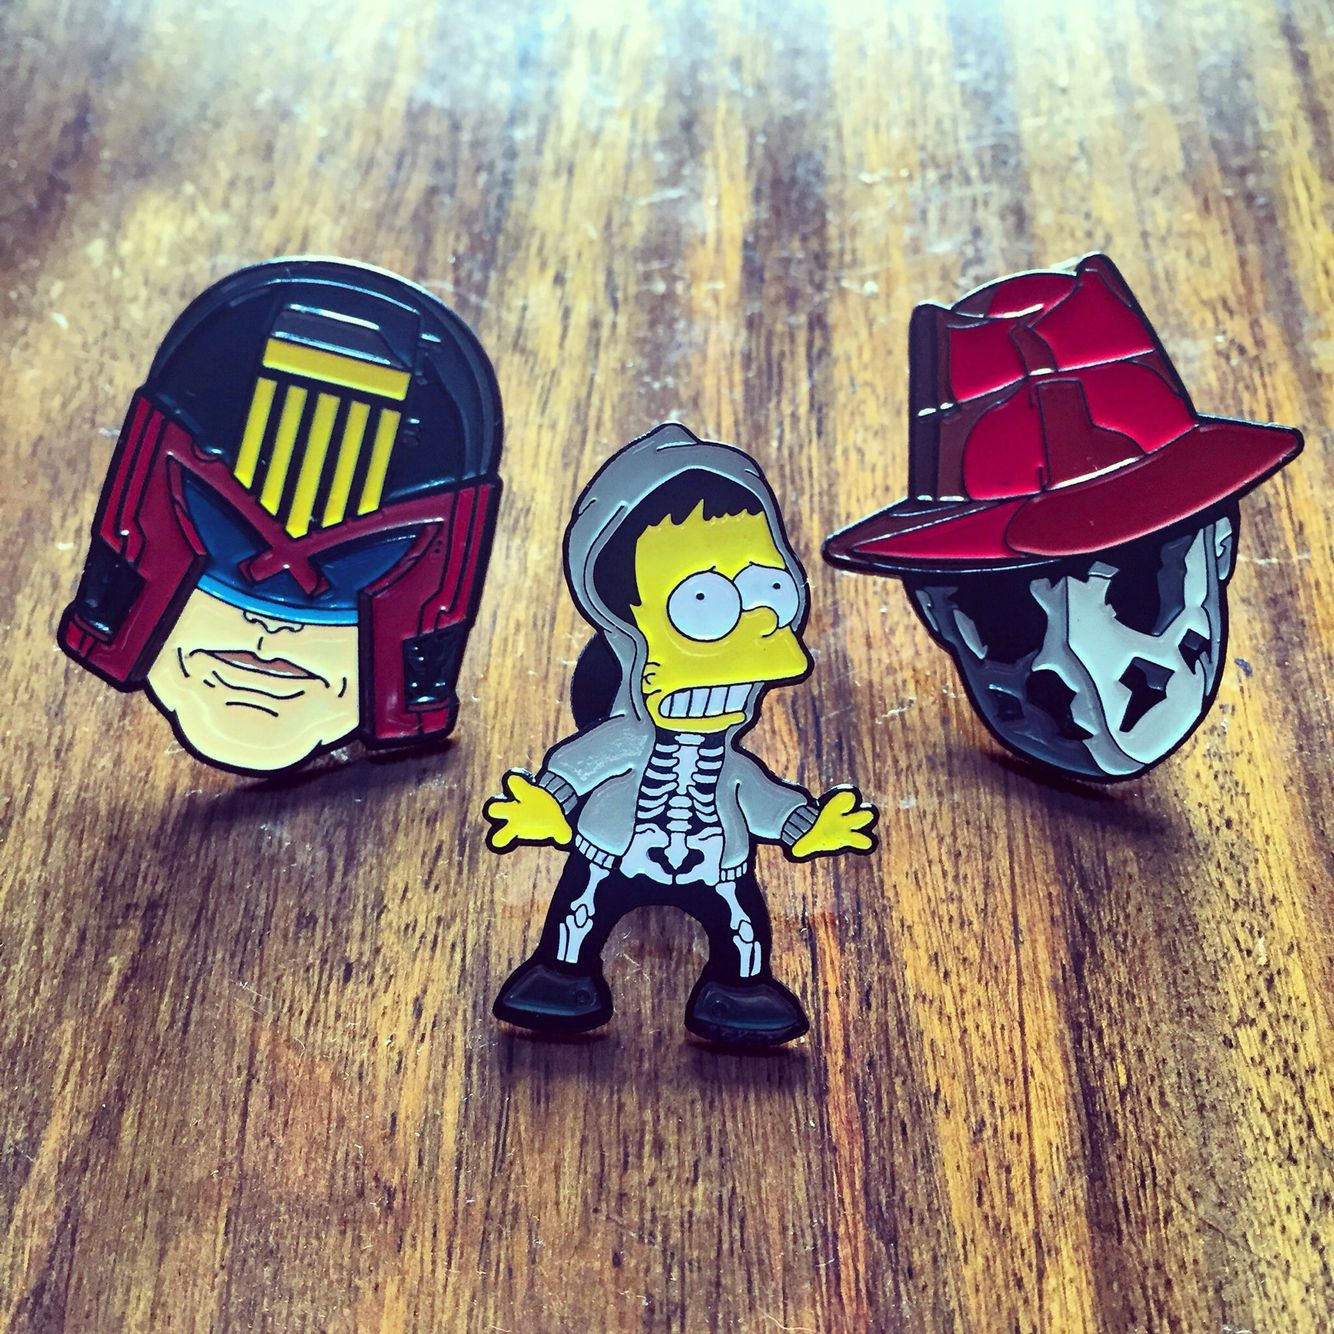 Dredd, Donnie Barto & Rorschach pins available at nofitstate.co